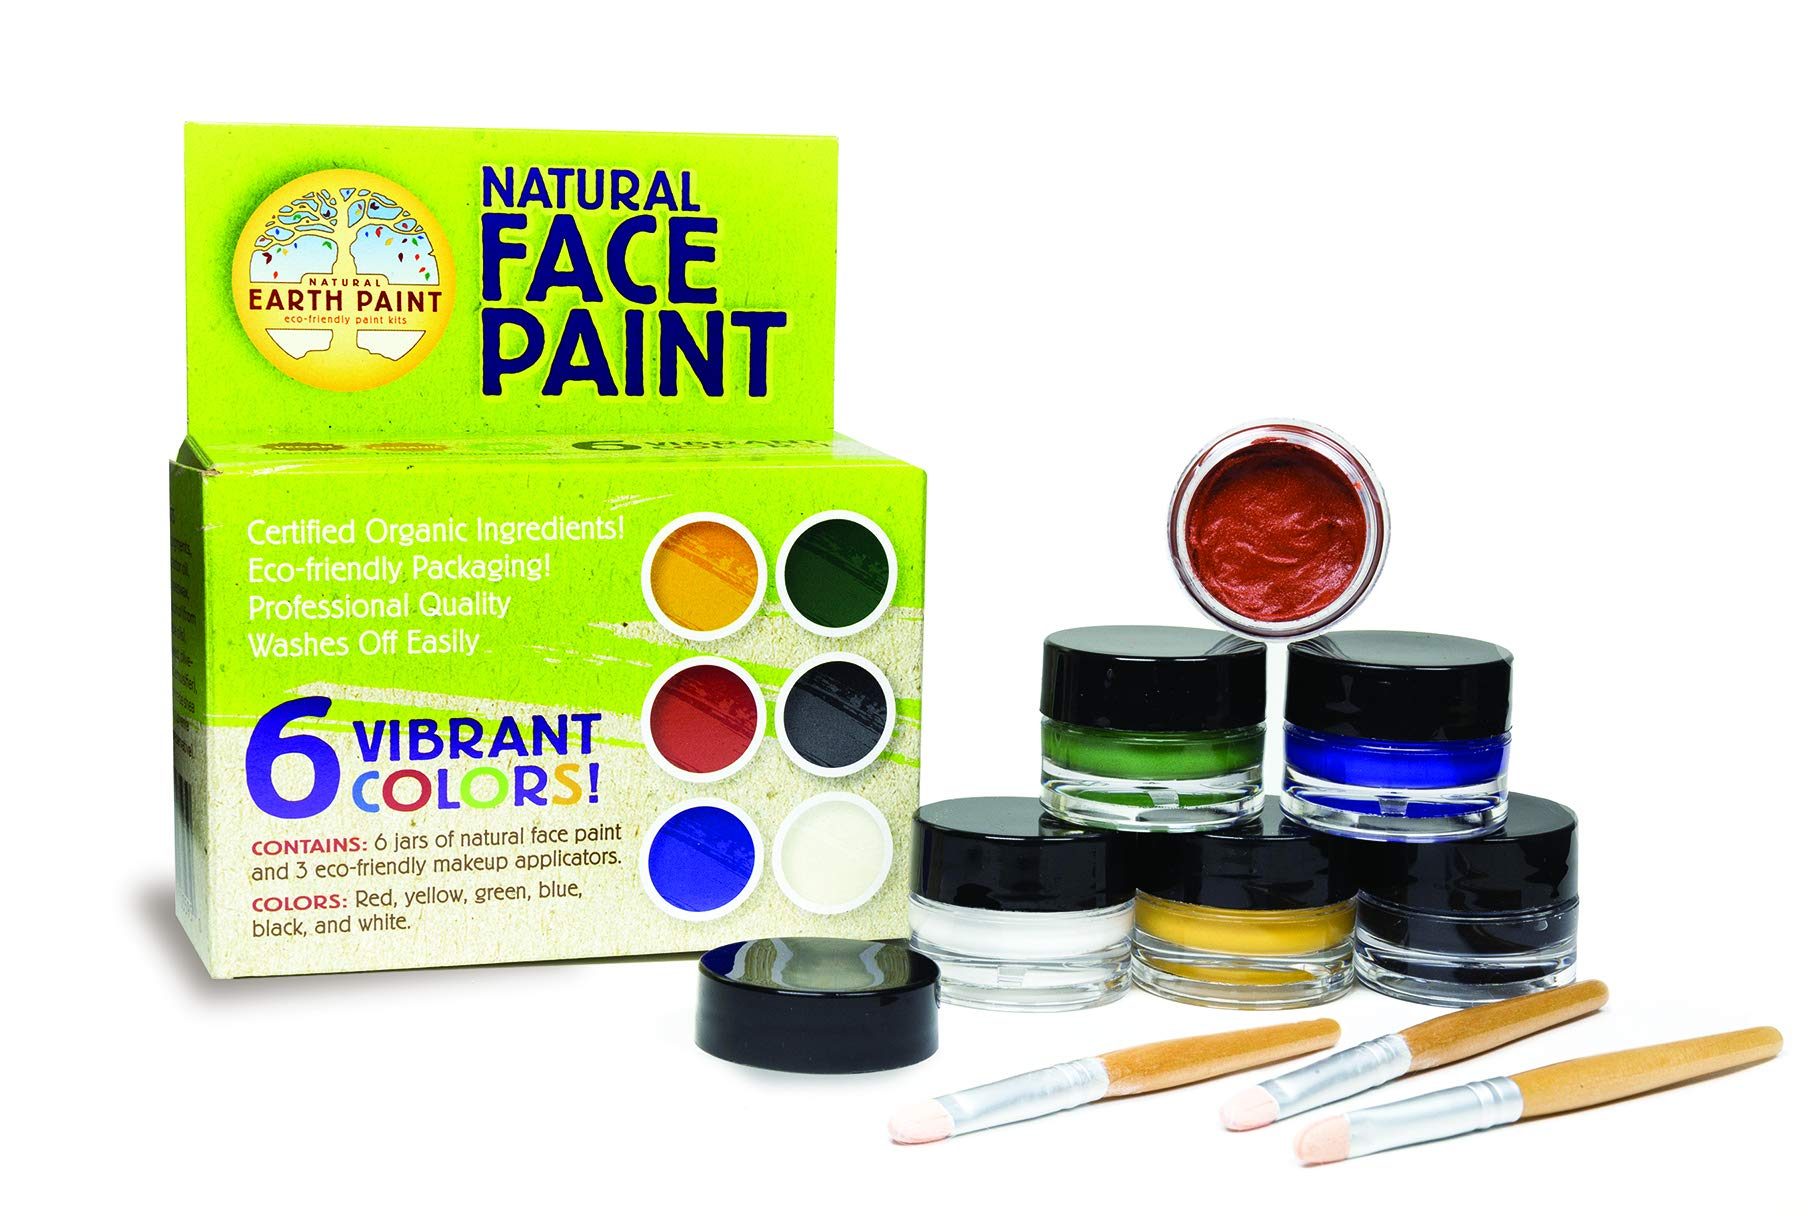 Natural Face Paint Kit - Safe, Organic and Hypoallergenic